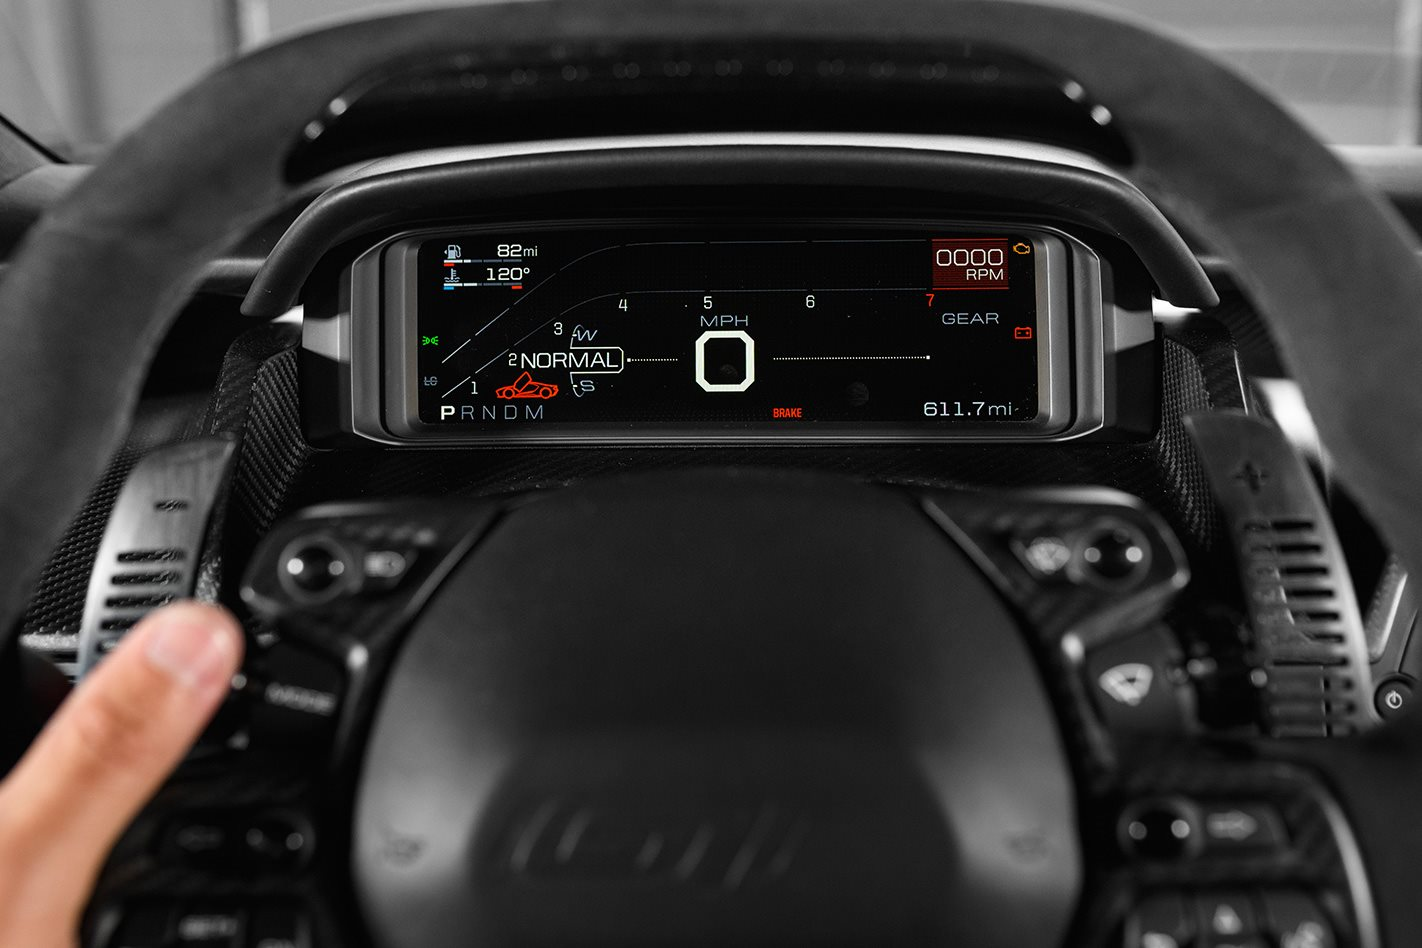 2017 Ford Mustang GT steering wheel